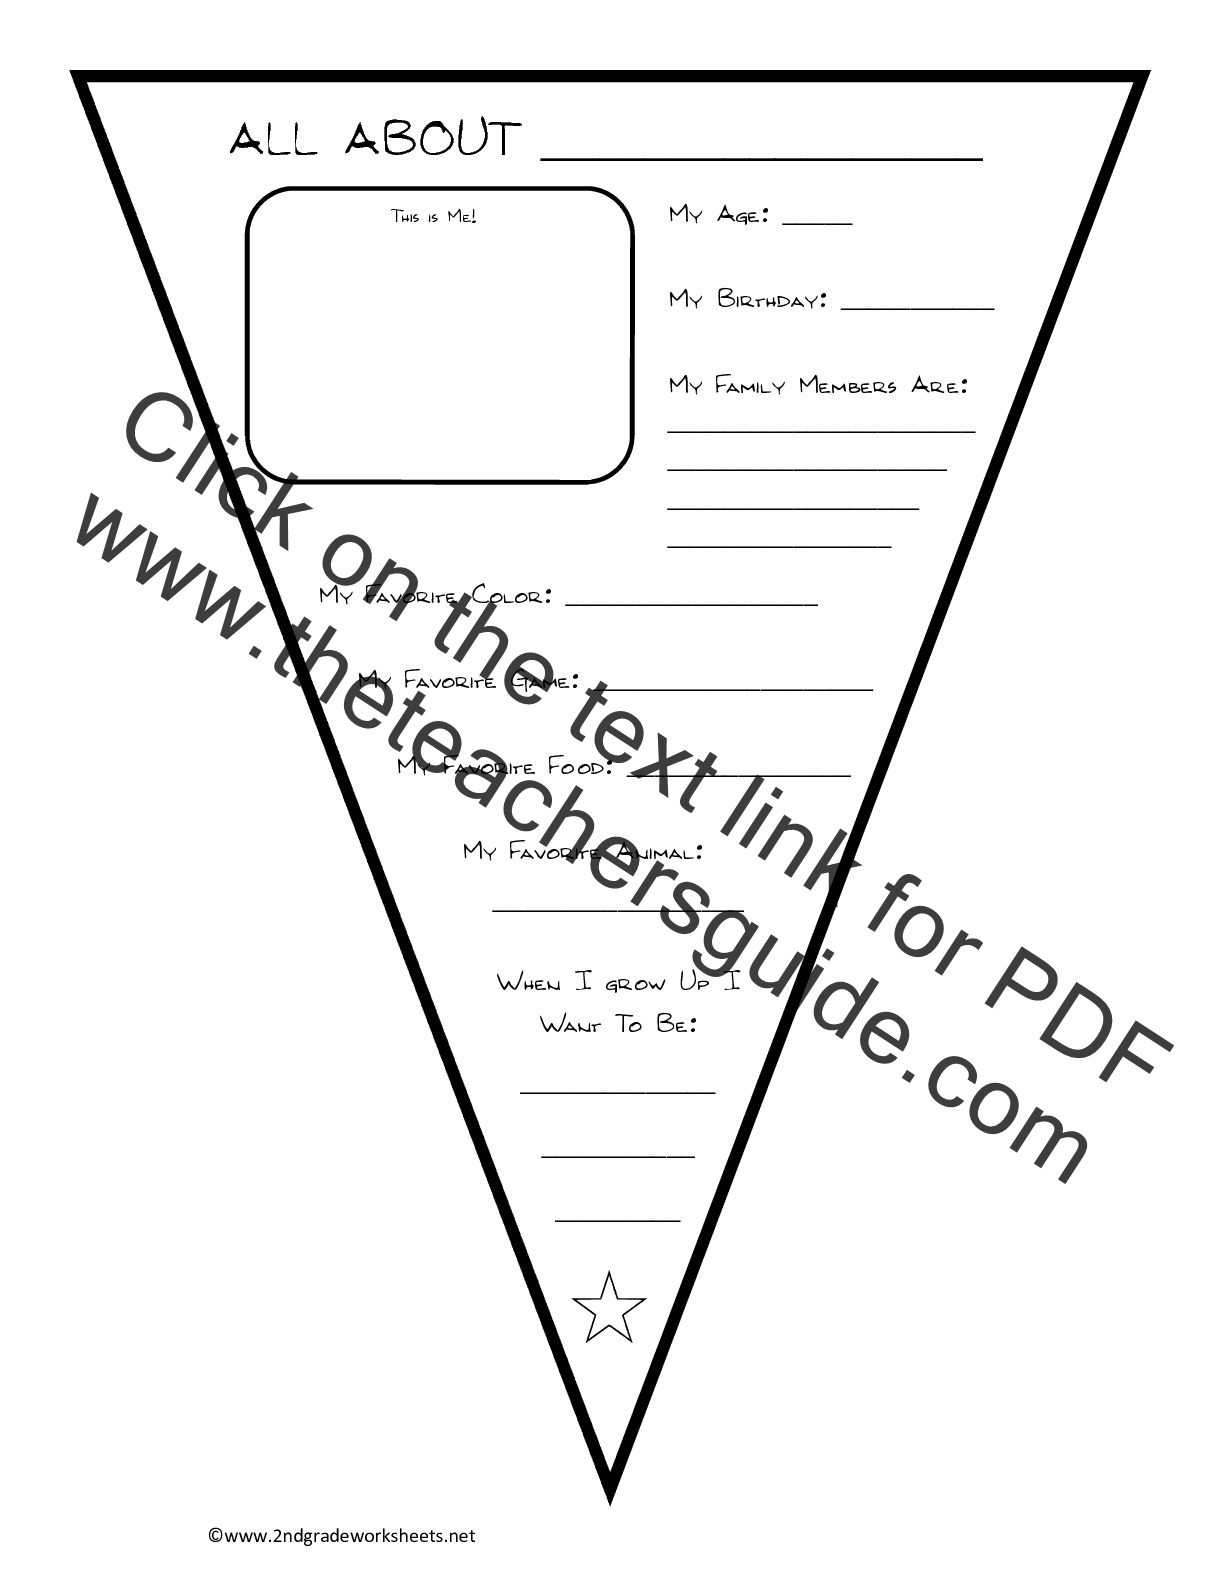 photograph relating to All About Me Free Printable Worksheet identified as No cost Back again in direction of Faculty Worksheets and Printouts